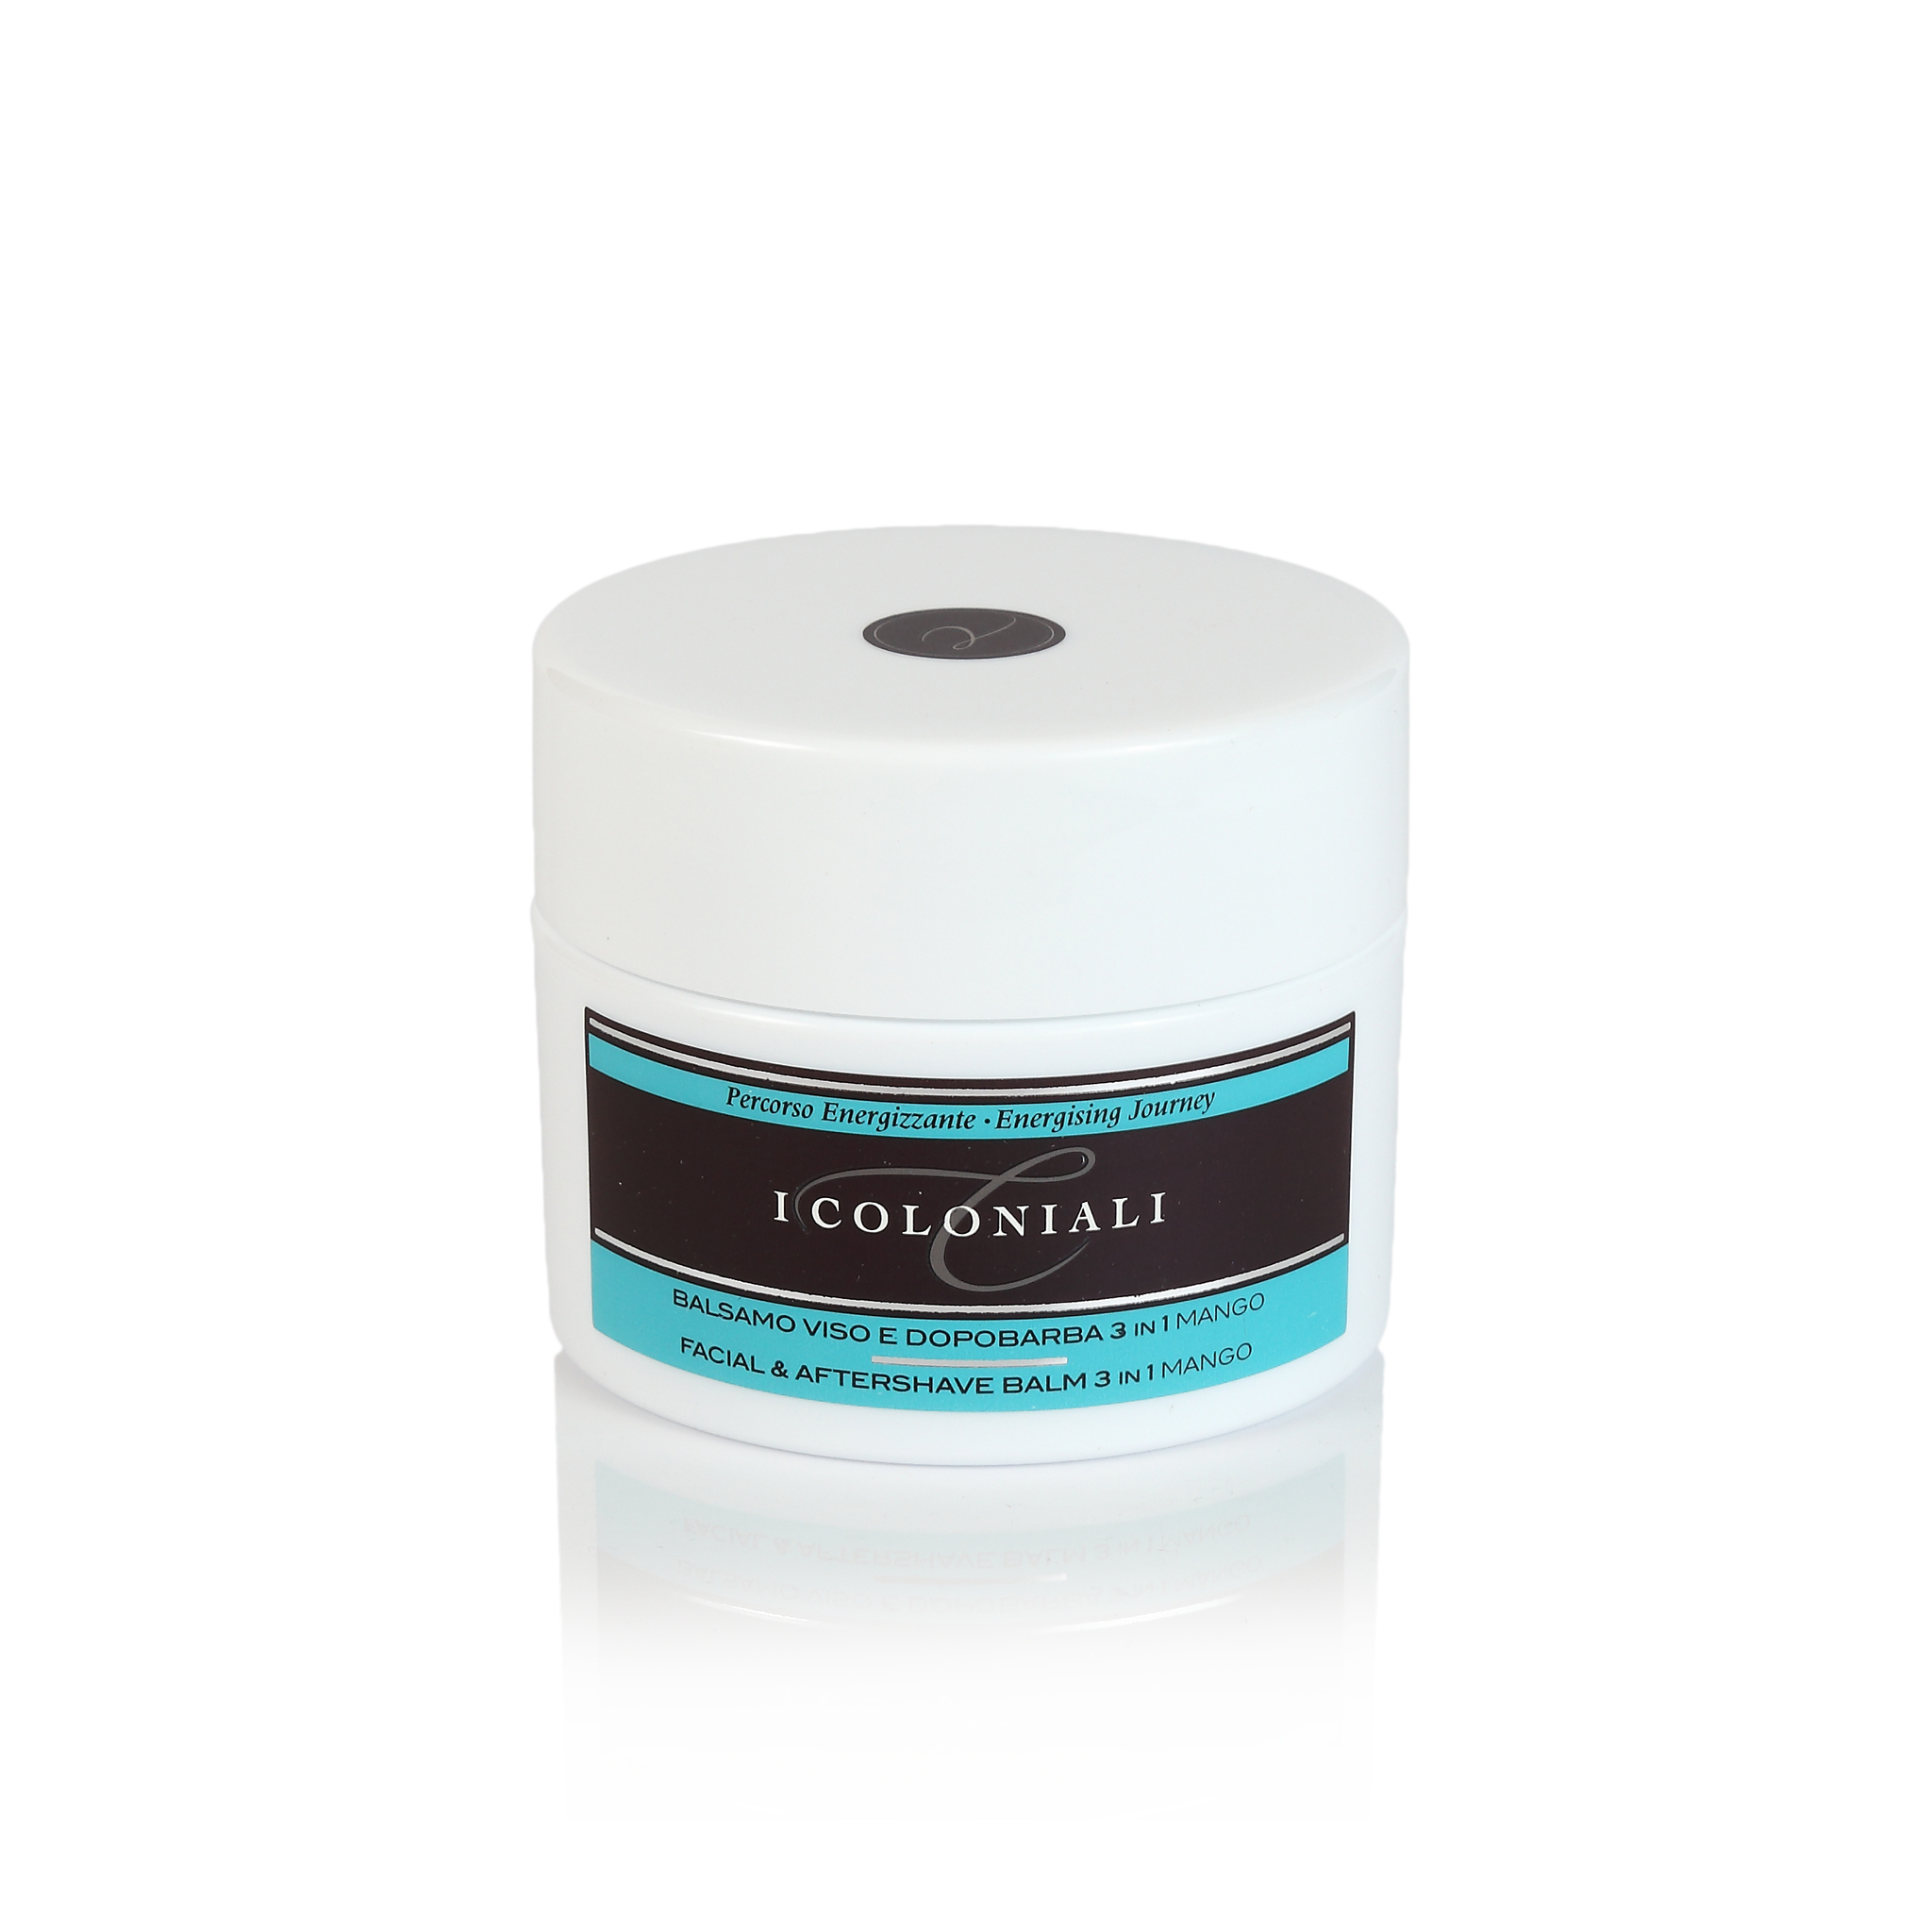 Energising Facial & Aftershave Balm 3 in 1 Mango